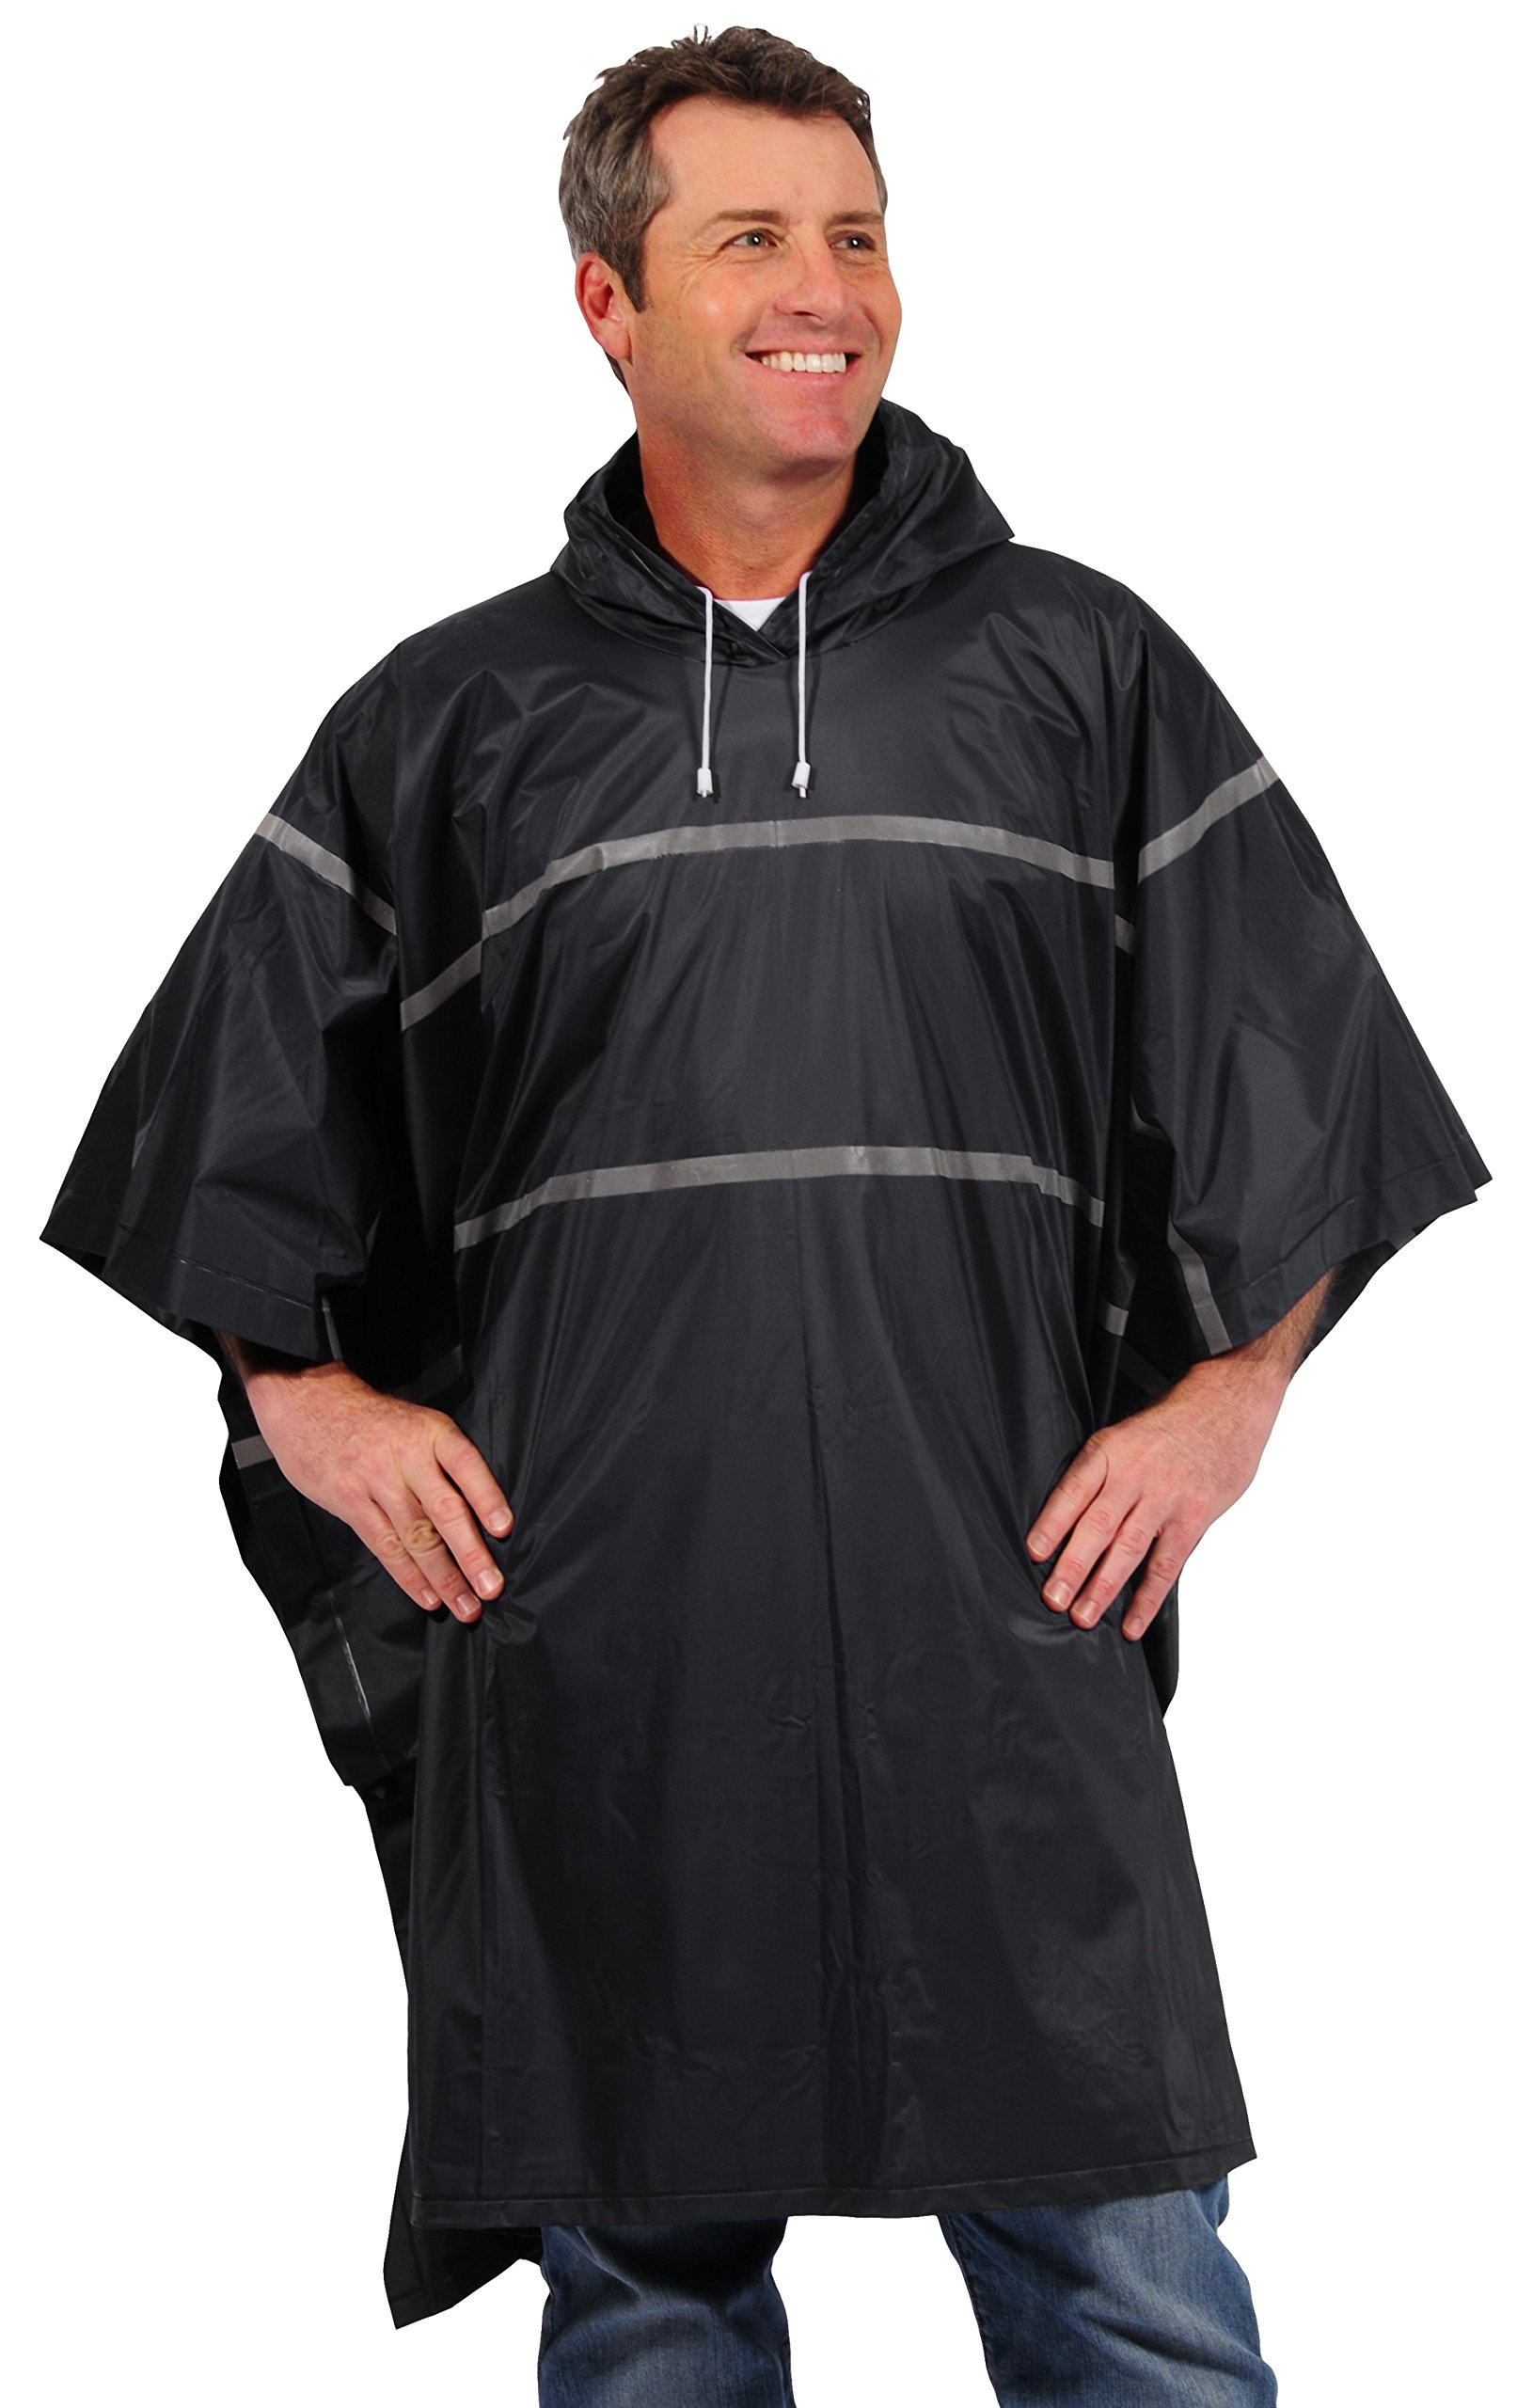 Galeton 12335-BK 12335 Repel Rainwear 0.20 mm PVC Rain Poncho with Reflective Stripes, Black, One Size by Galeton